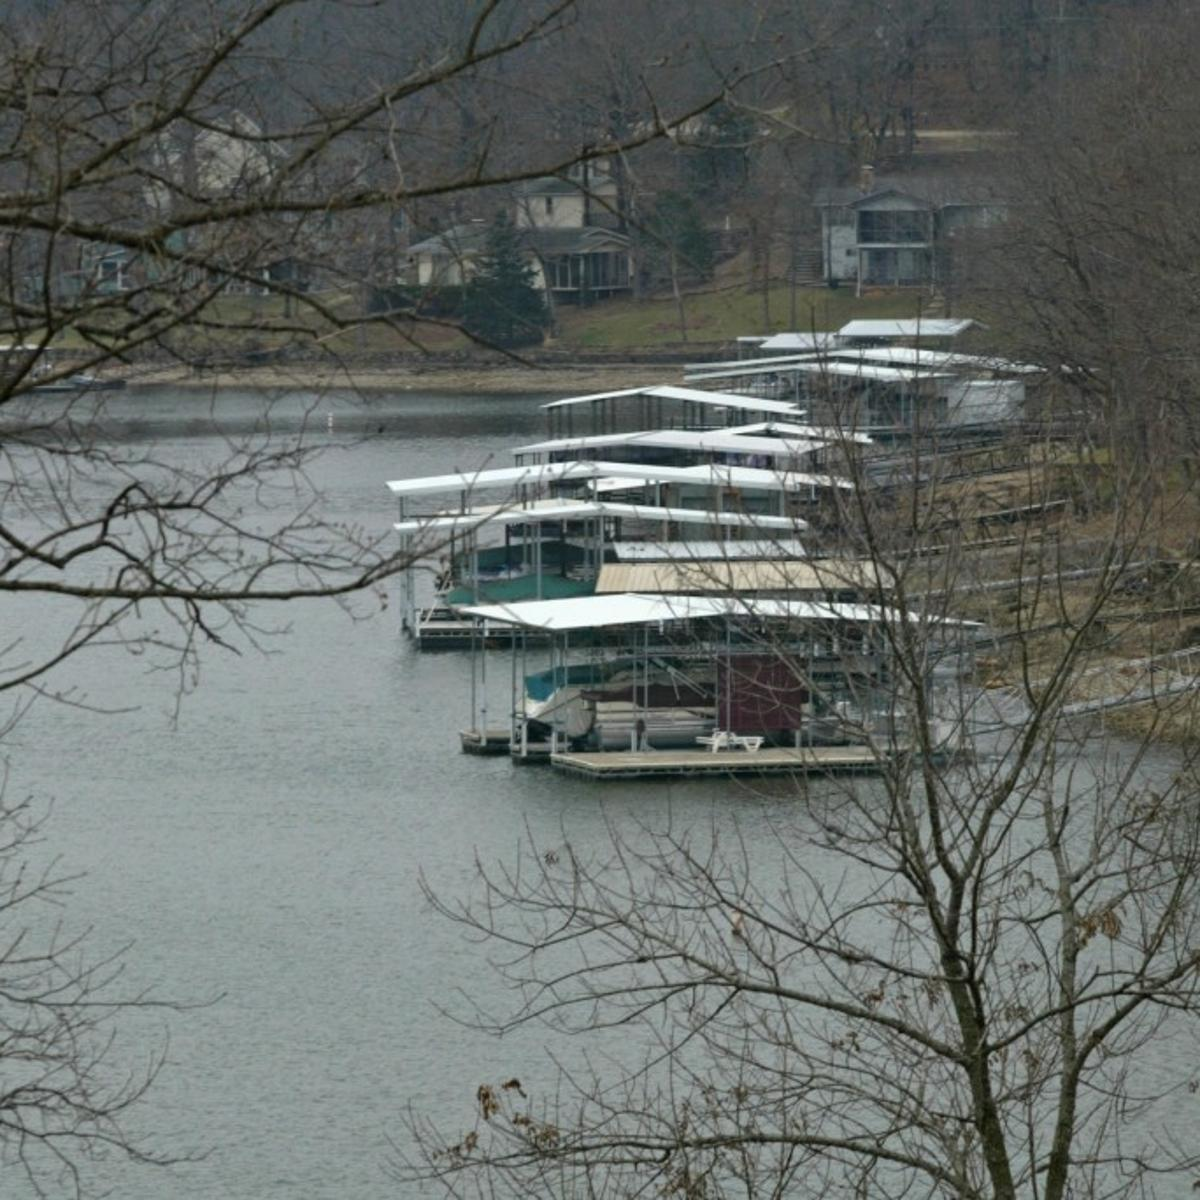 Docks with bad wiring prove deadly at Lake of the Ozarks